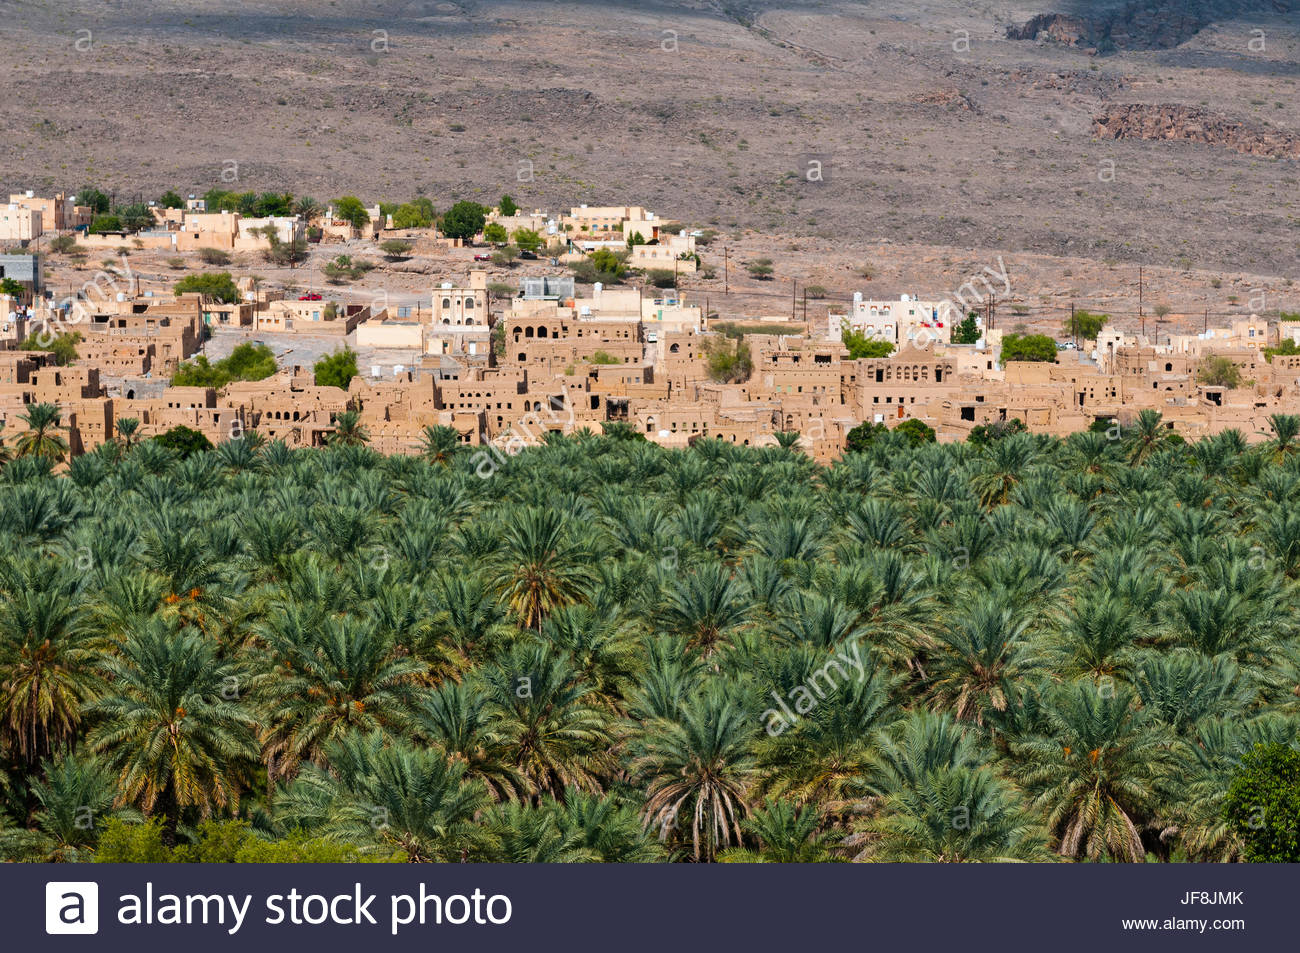 A distant view of the 400-year-old town of Al Hamra, and a stand of palm trees. - Stock Image